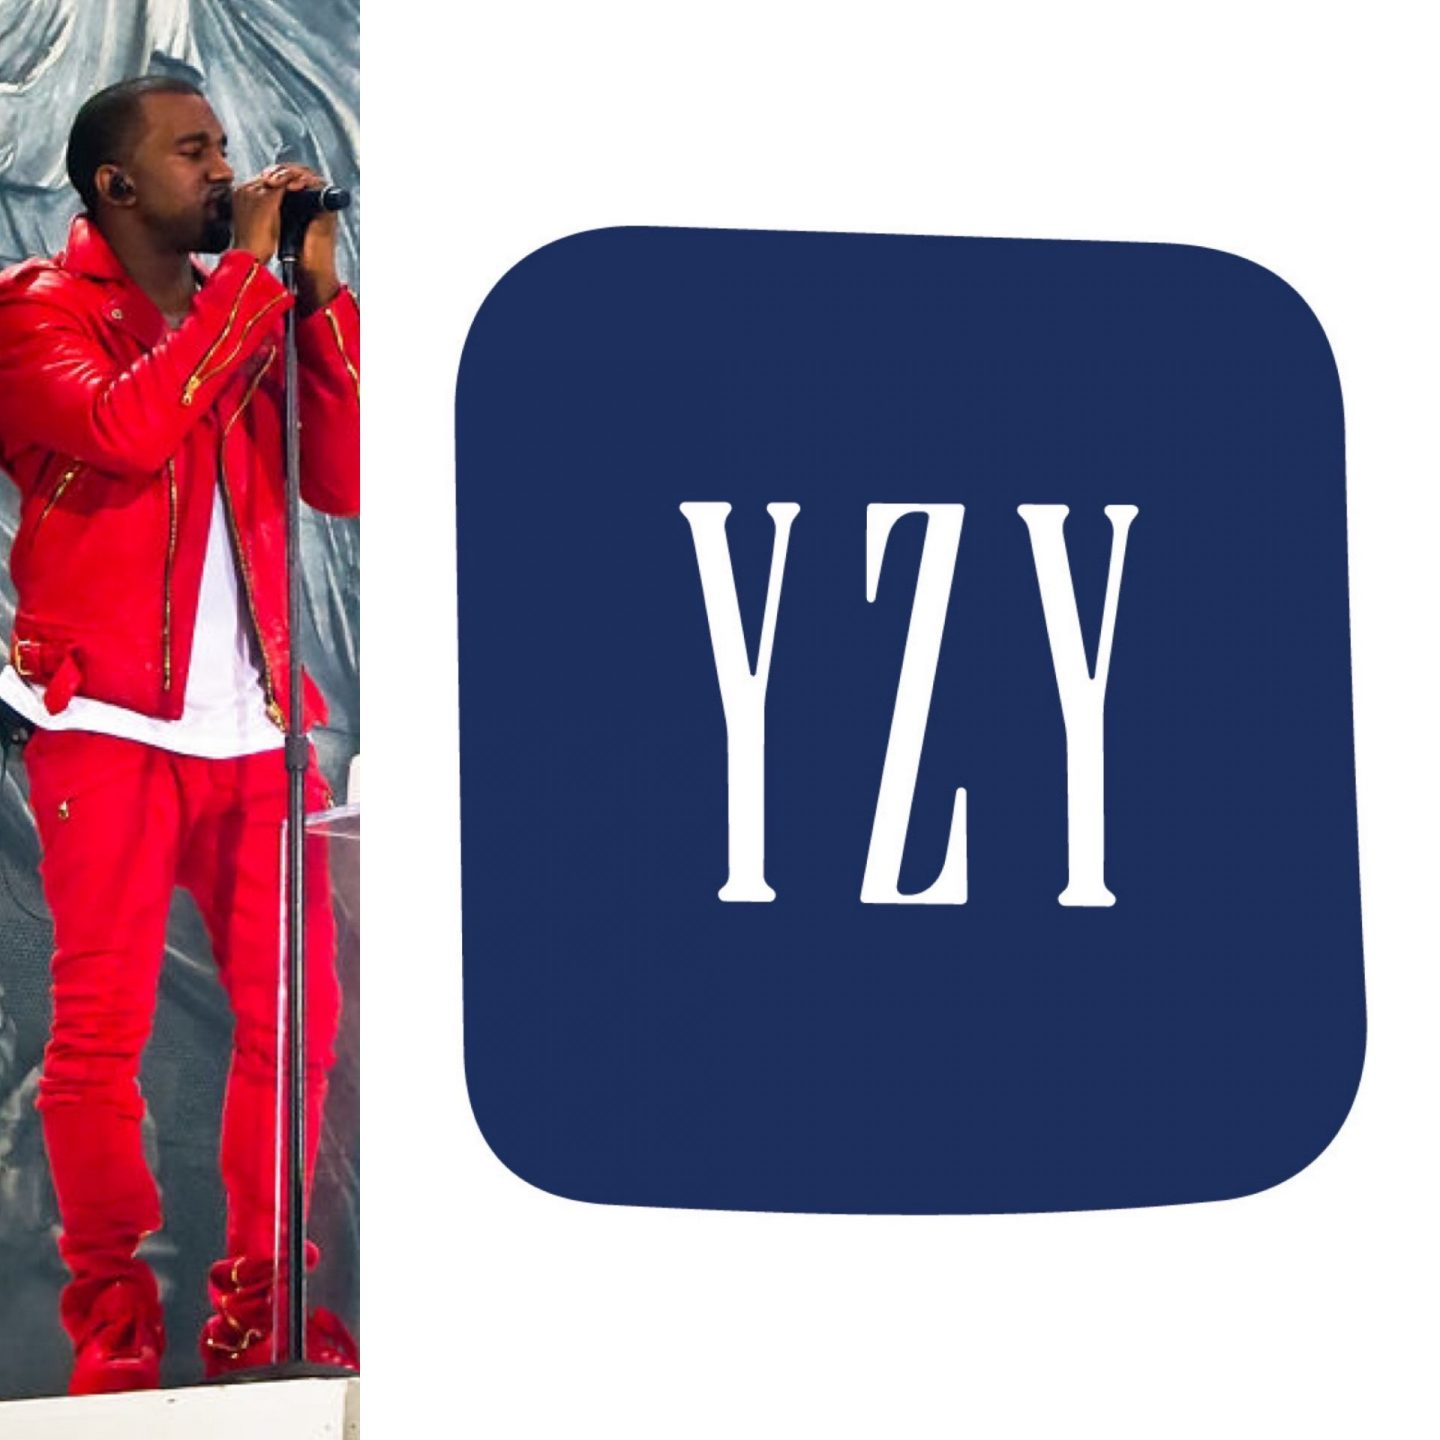 Kanye West Brings Yeezy Brand to the Gap